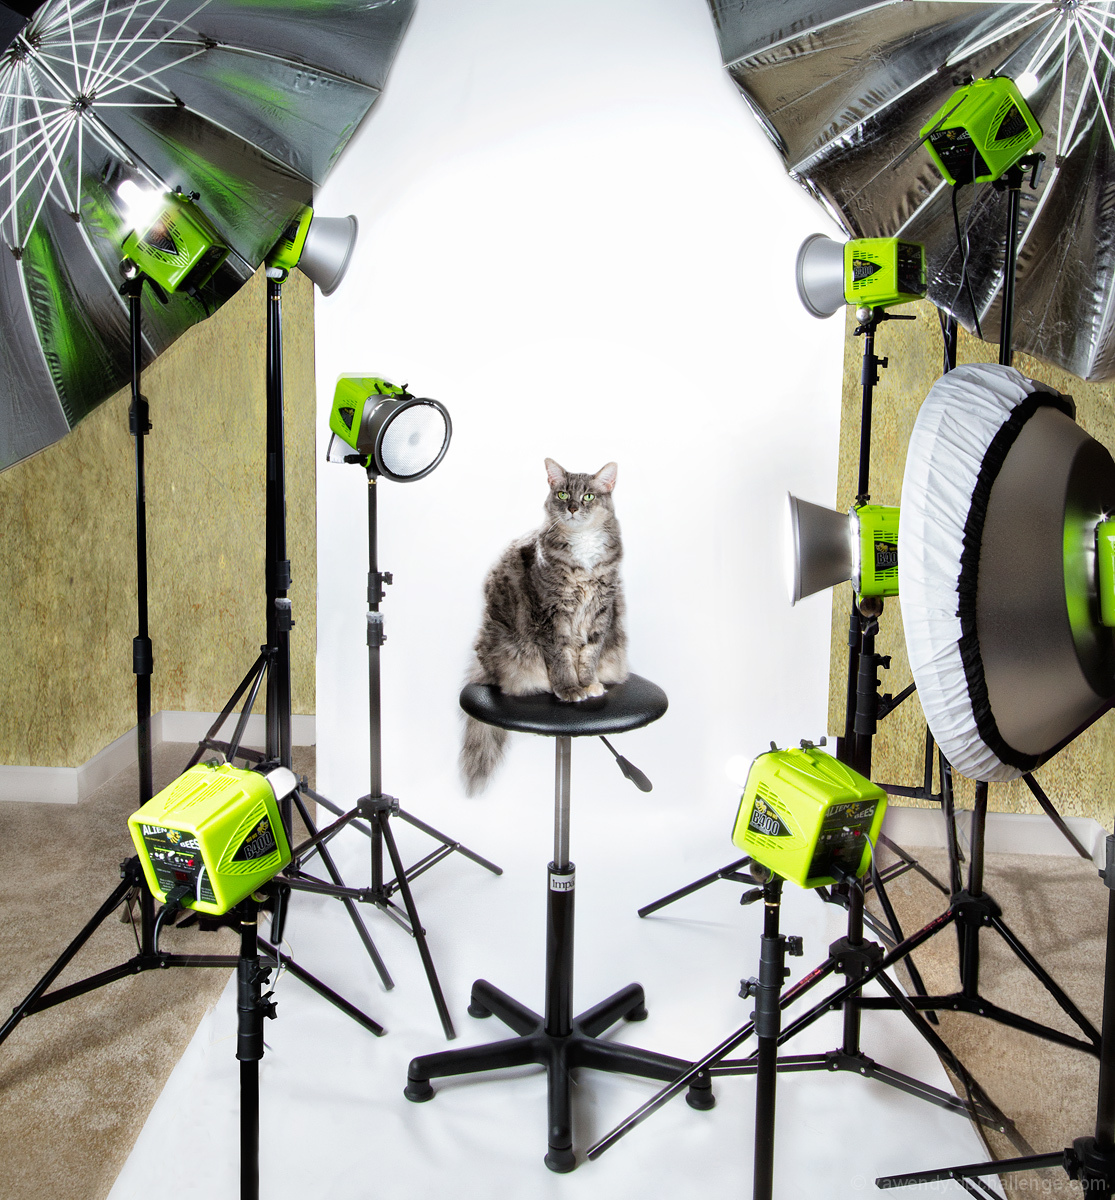 Santa, Could I please have a couple of studio lights?